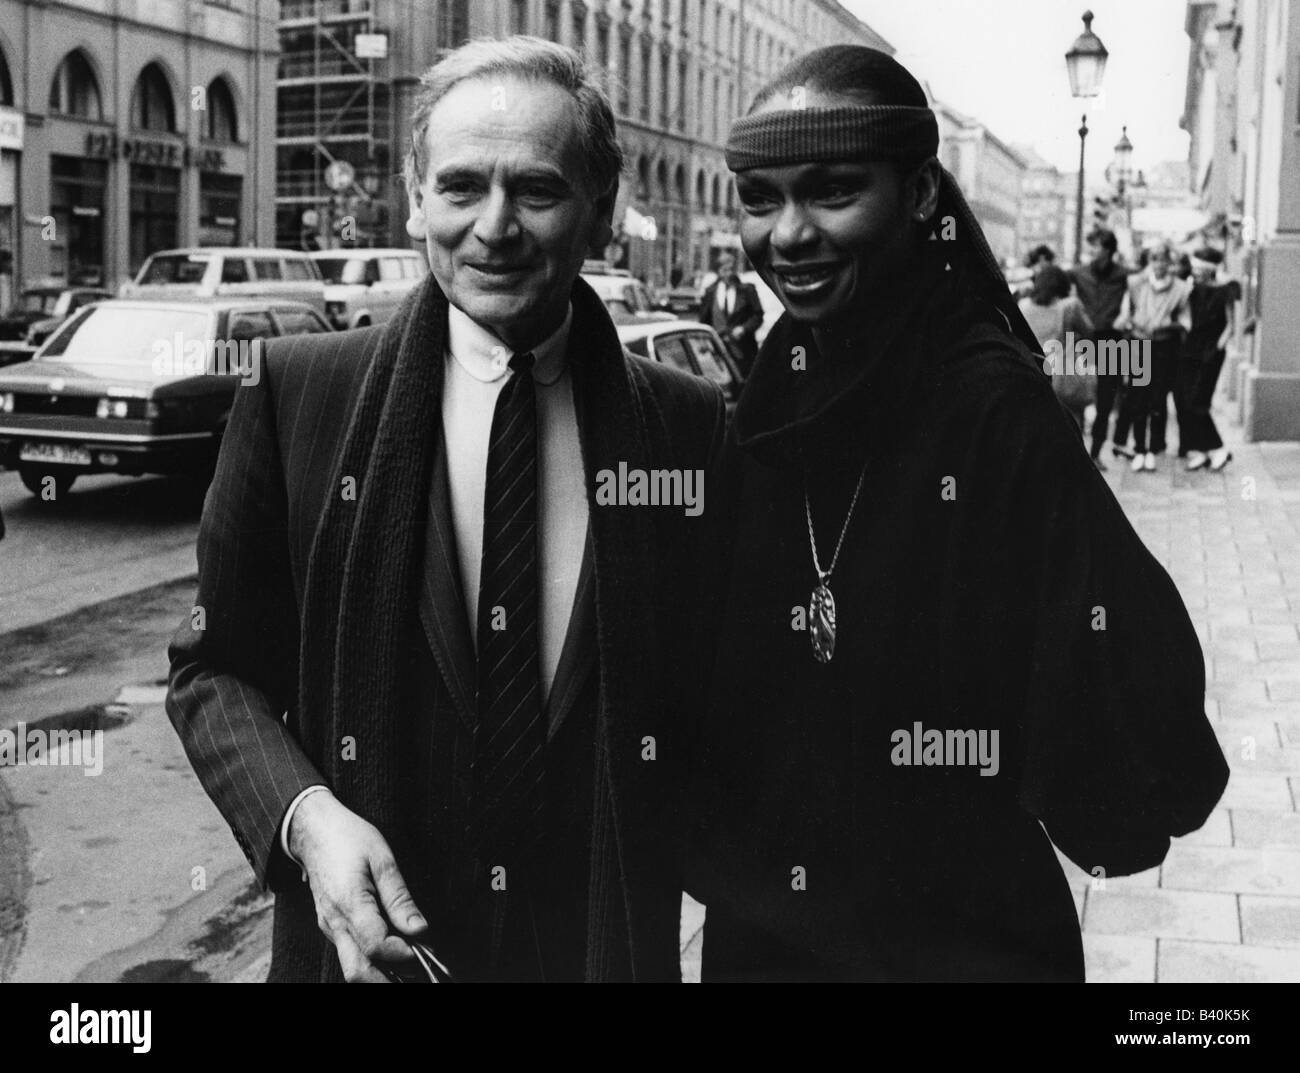 Cardin, Pierre  * 7.7.1922, French fashion designer, with model  Vivian Red, Maximilianstrasse, Munich, April 1982, - Stock Image